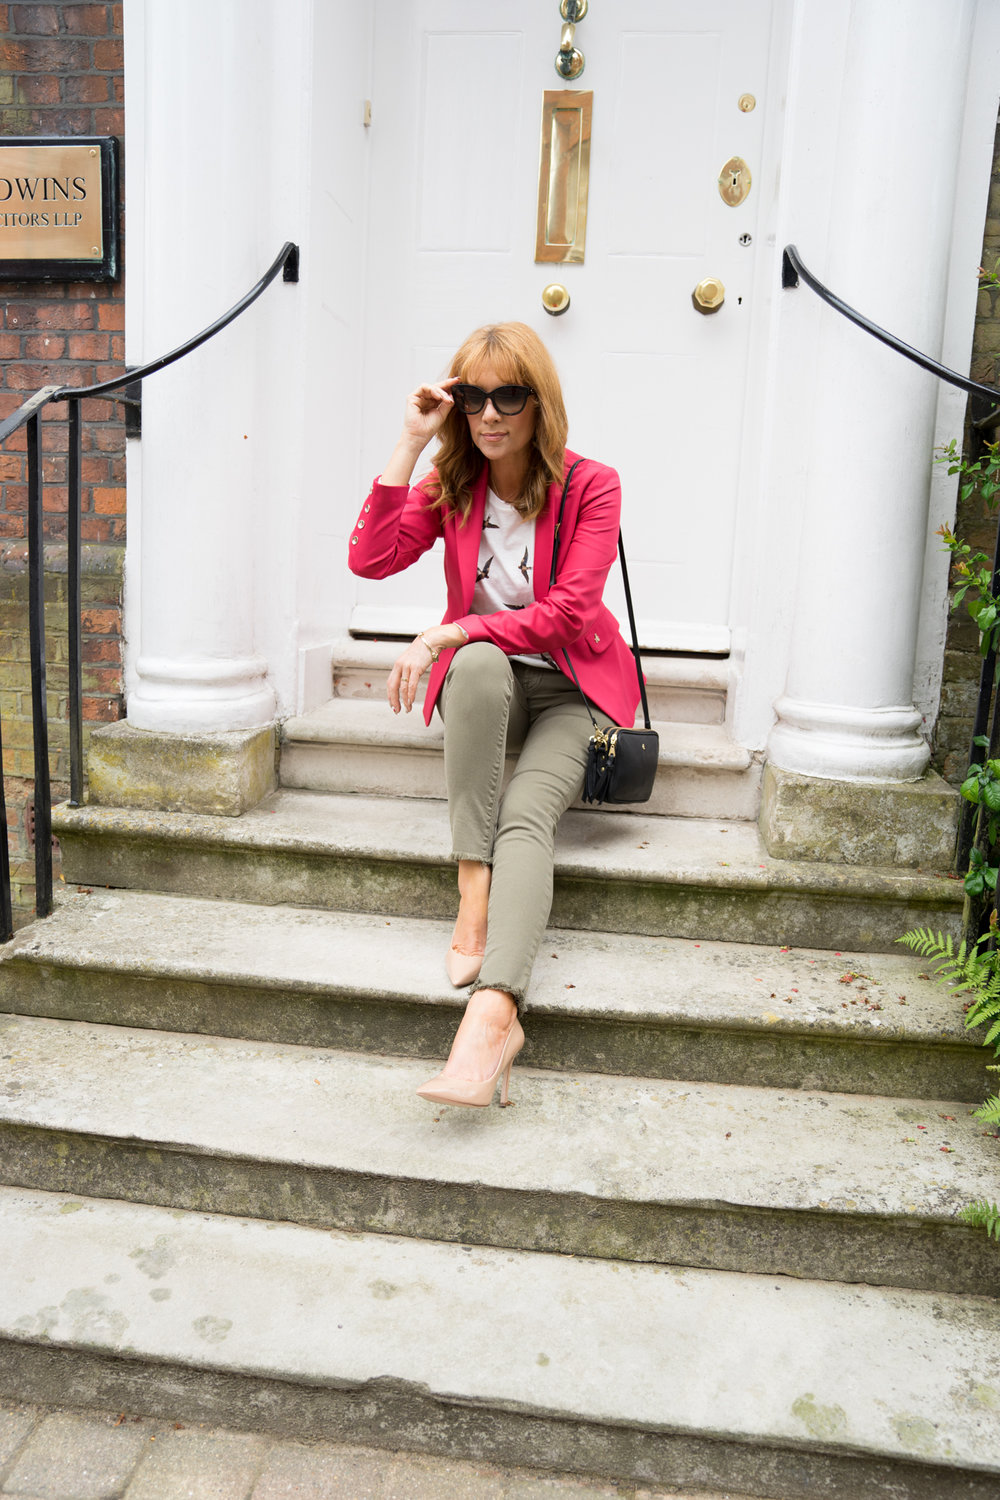 The Style Bible - Choose Colour Over Black, Winchester fashion blogger Sarah Bacchus, Personal stylist, Fashion stylist, Style blogger,